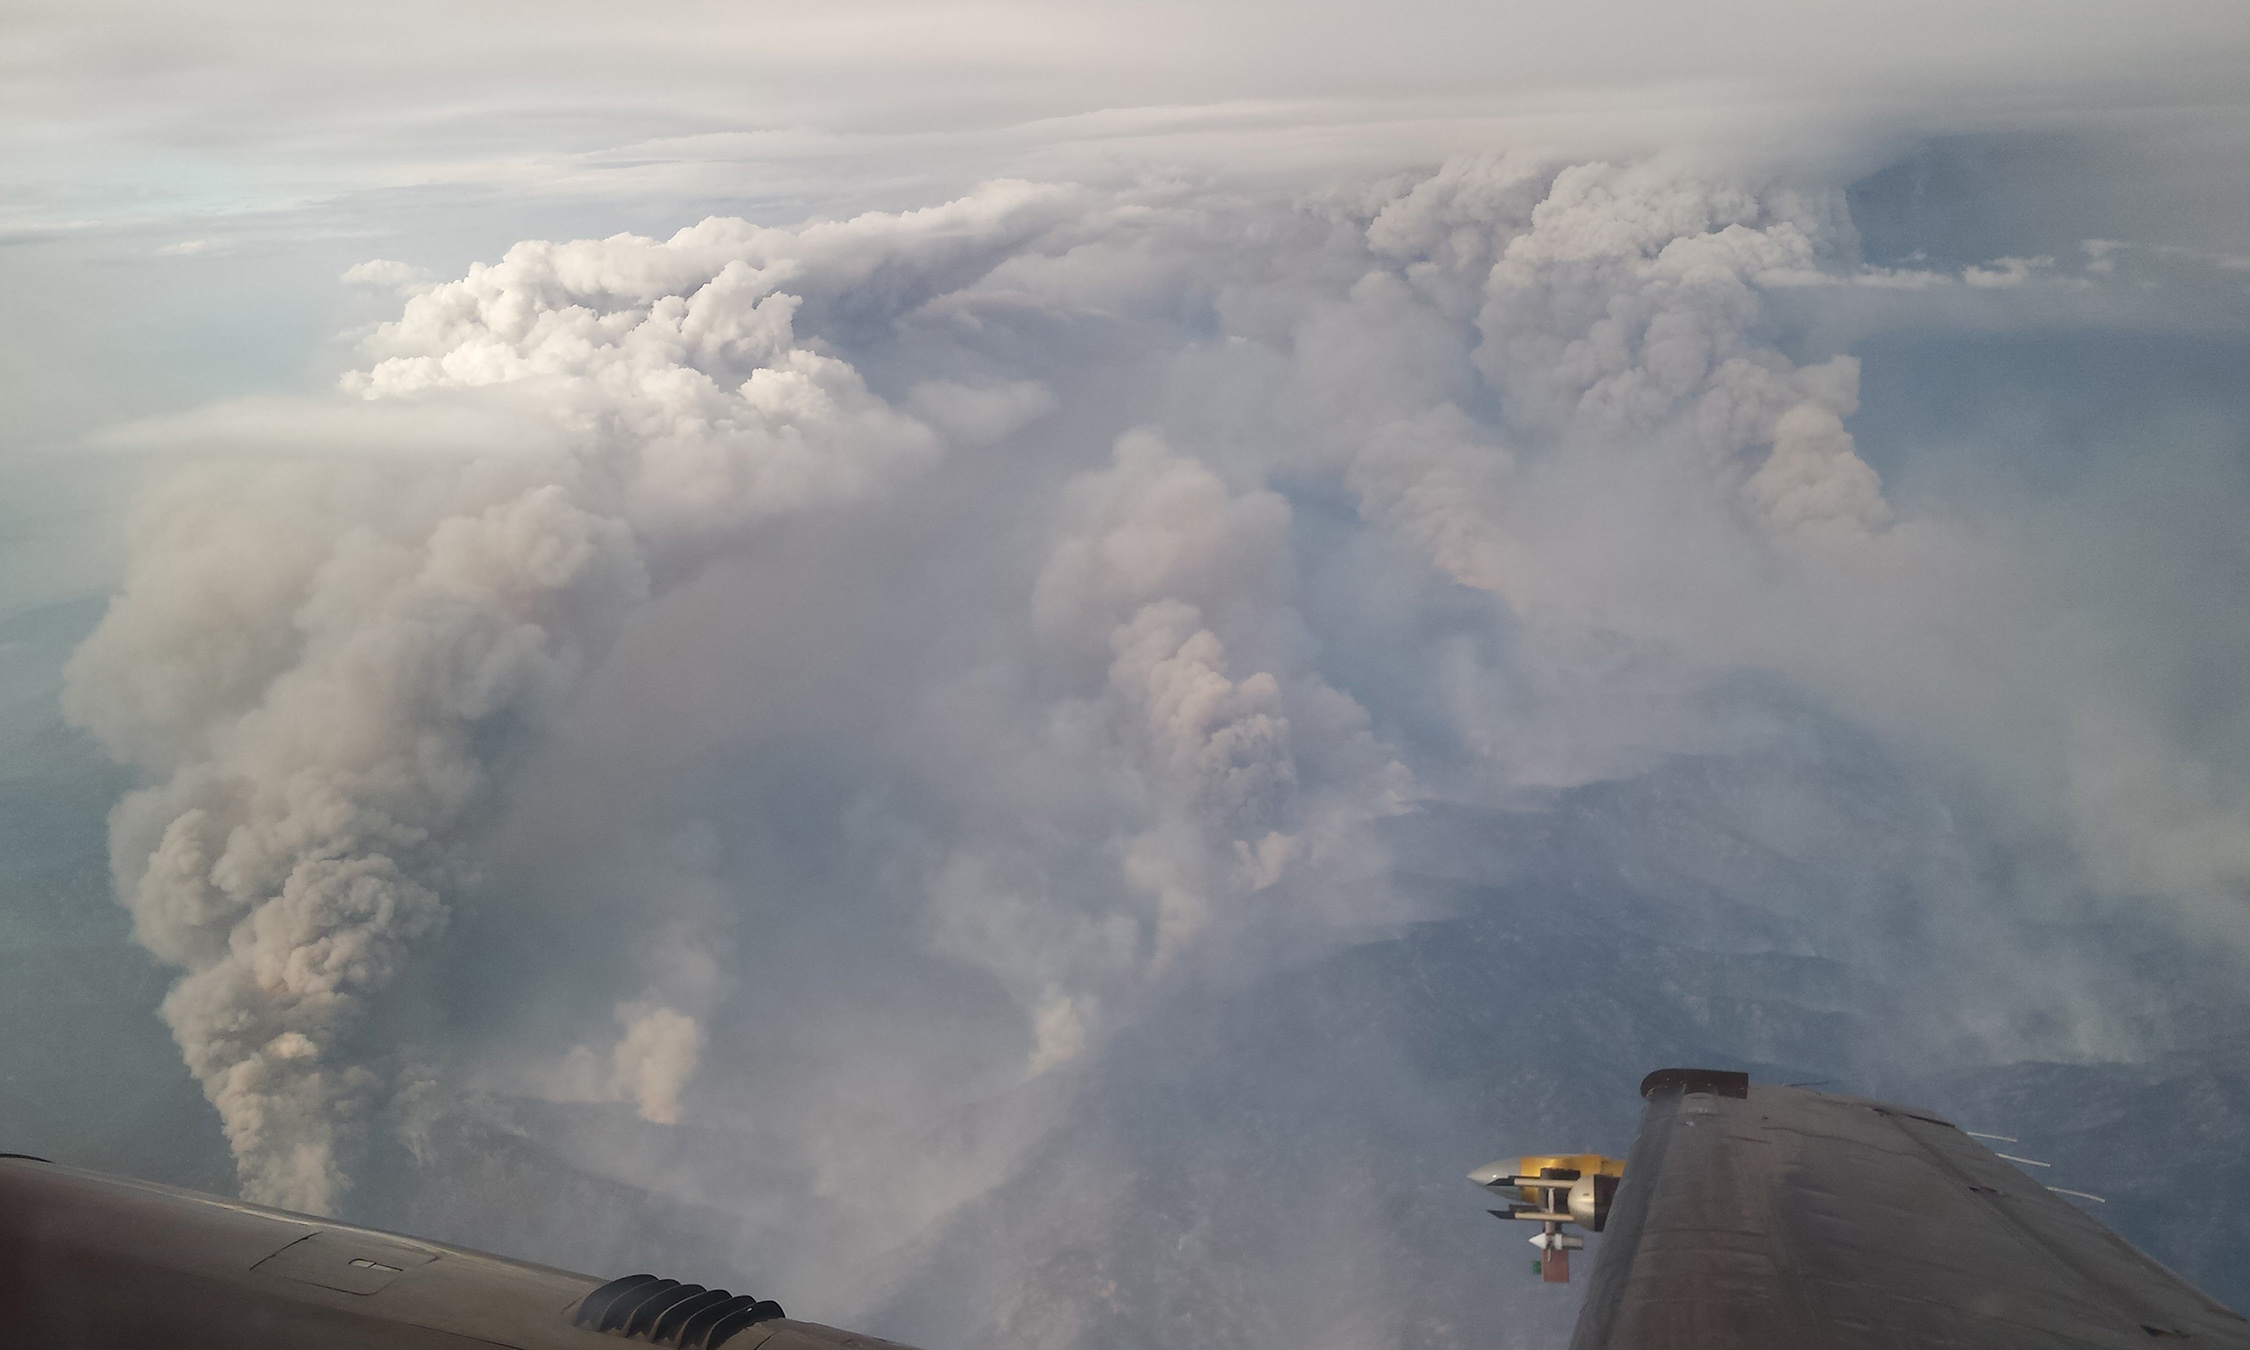 UW Scientists Go Airborne to Study Wildfire Smoke